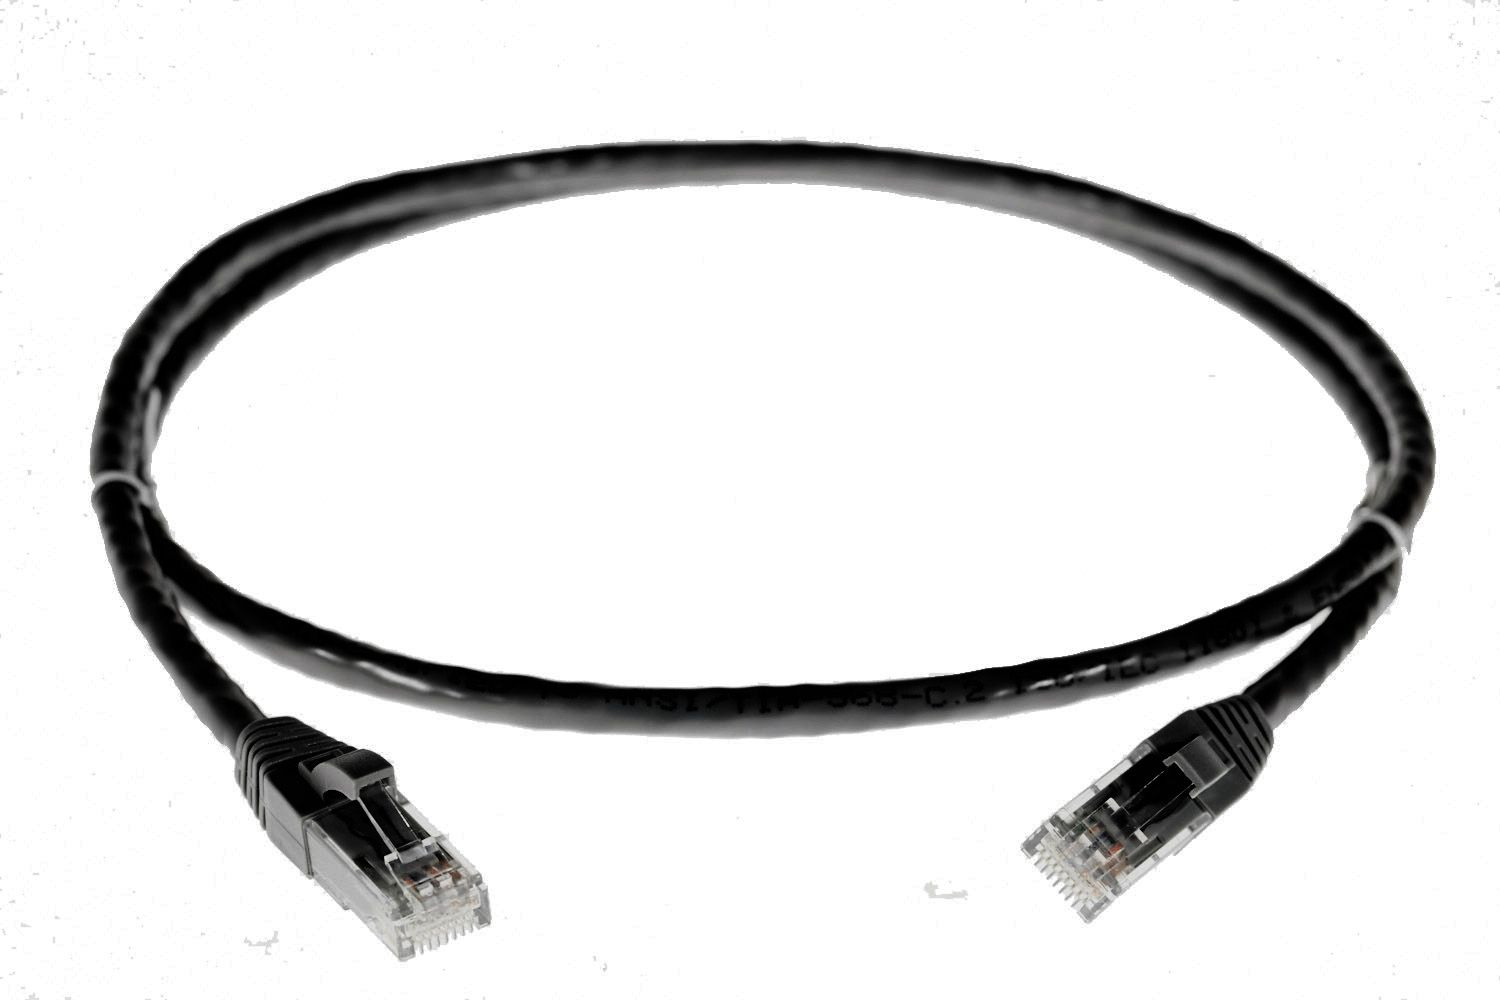 4cabling - cat6 rj45 black network cable - 1 5m